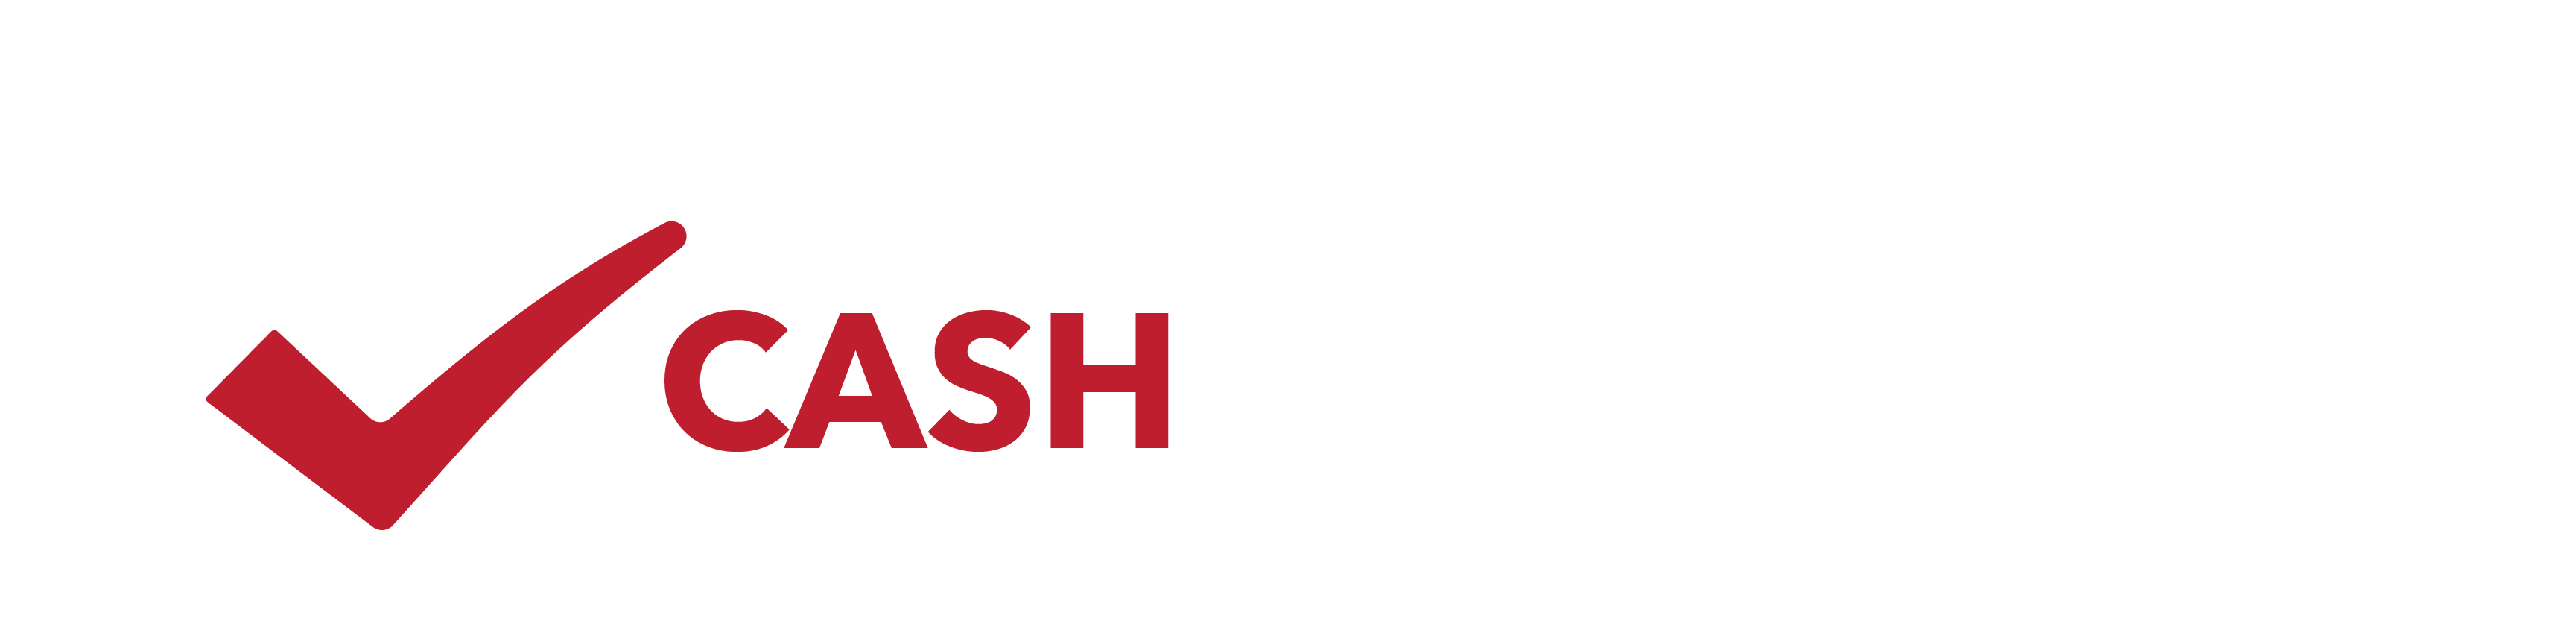 Cash Home Buyers Phoenix